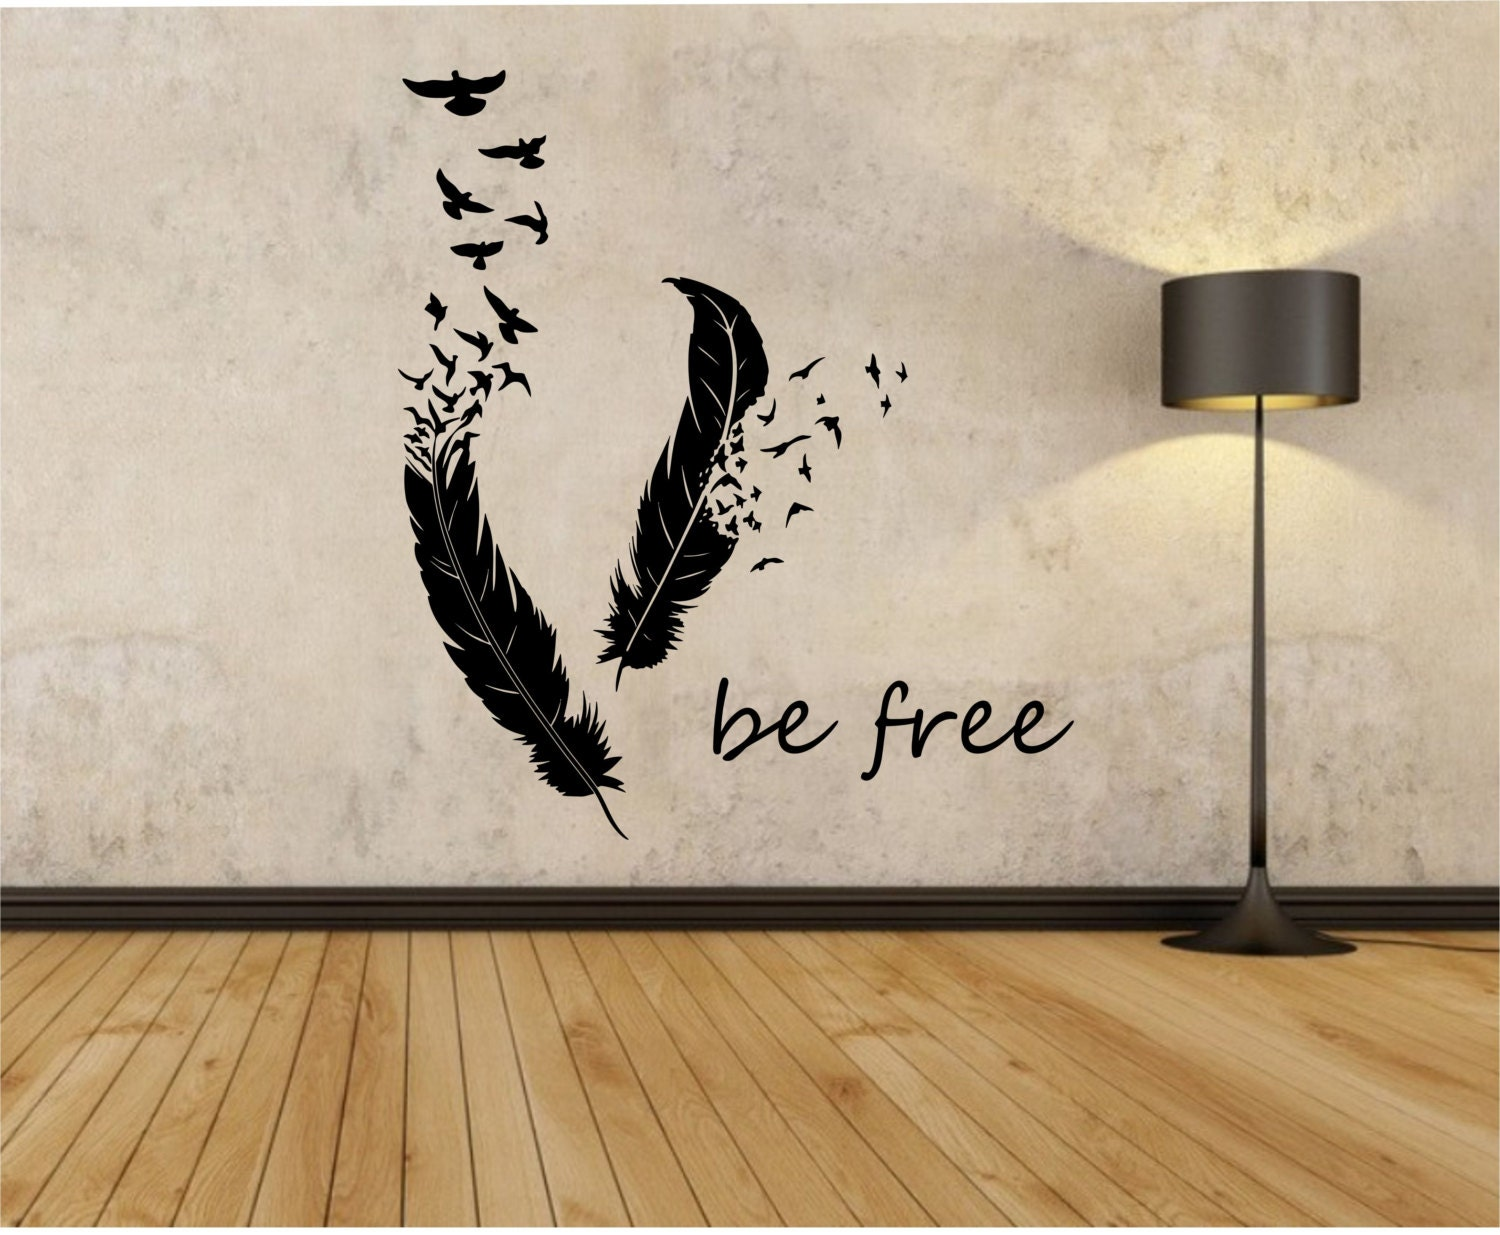 Feathers Turning Into Birds Vinyl Wall Decal Sticker Art Decor